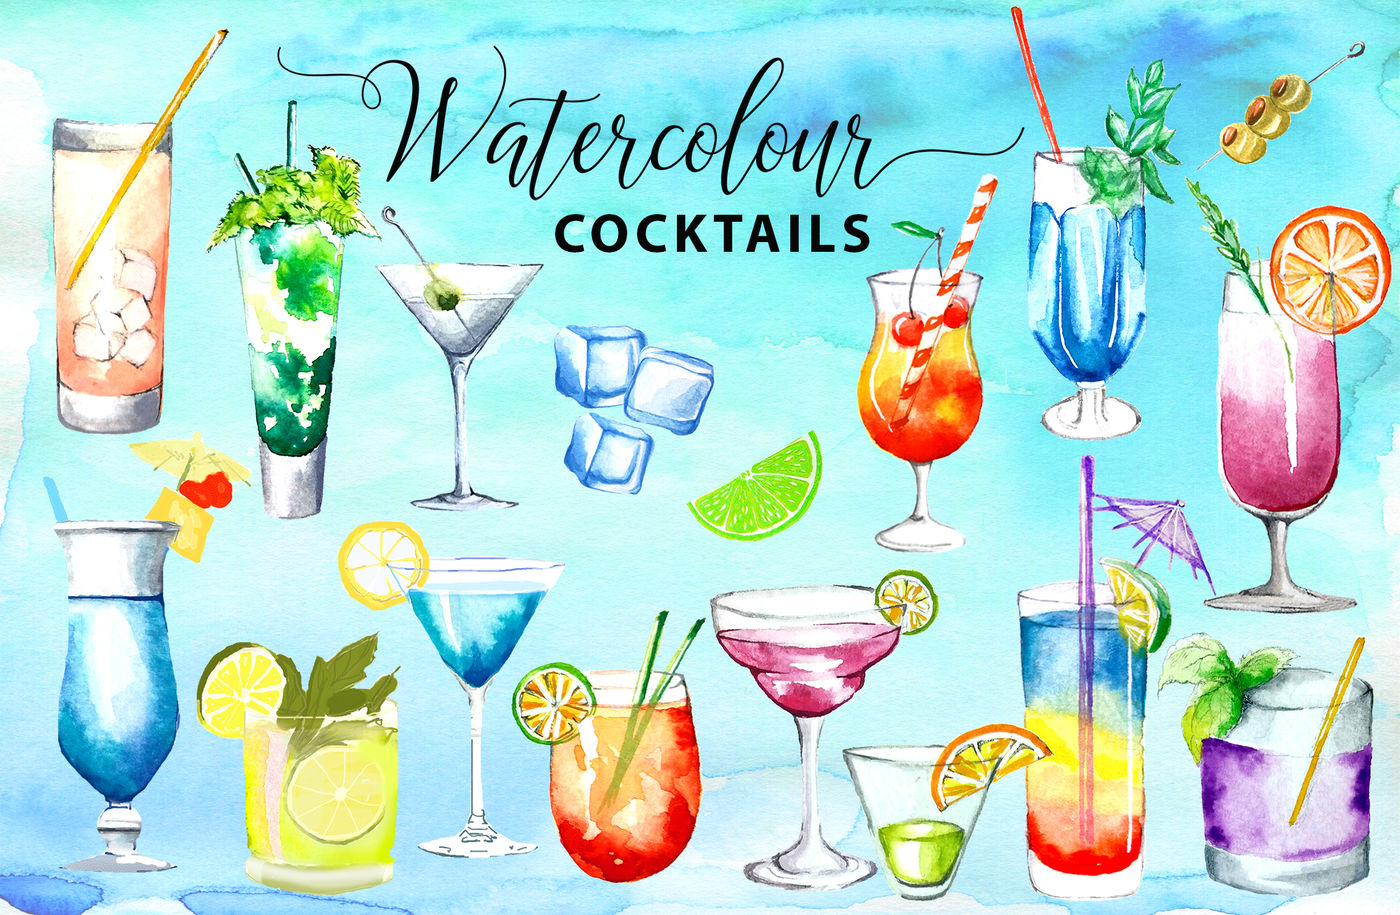 Watercolor drinks clipart clip royalty free download Watercolor Cocktails Watercolor Drinks Watercolor Clipart ... clip royalty free download